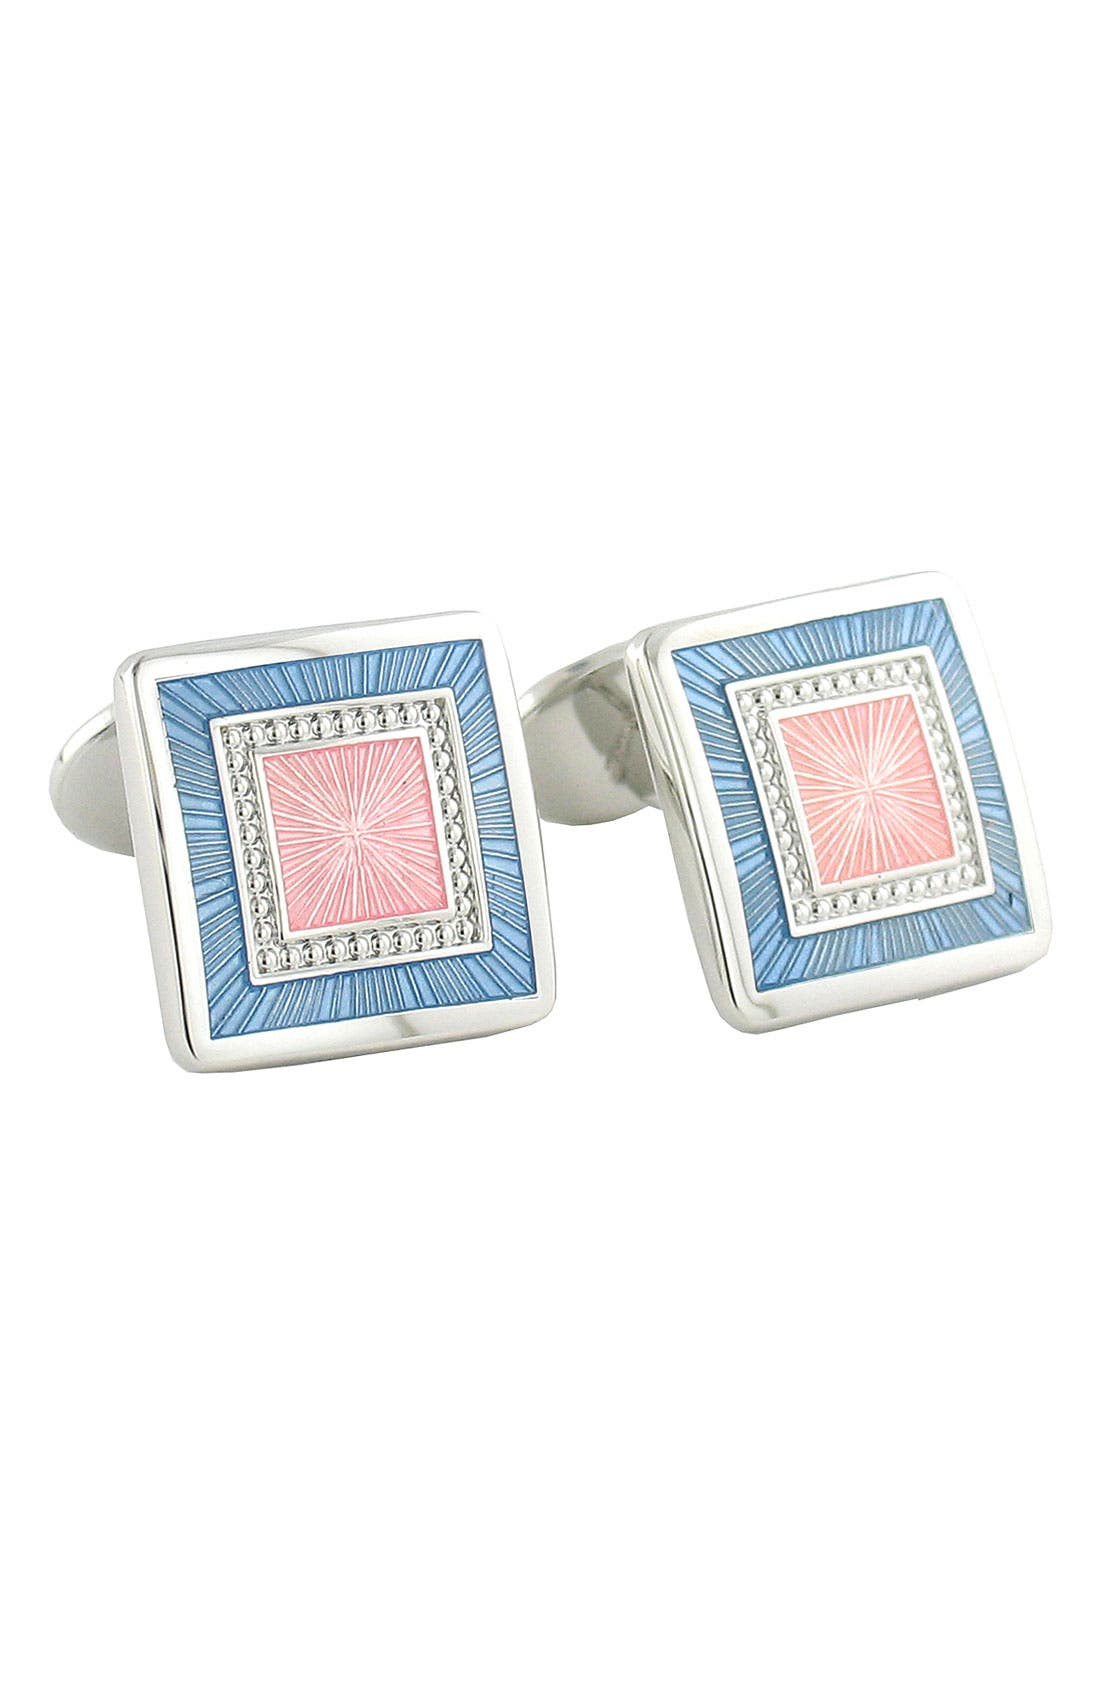 Alternate Image 1 Selected - David Donahue Square Sterling Silver Cuff Links